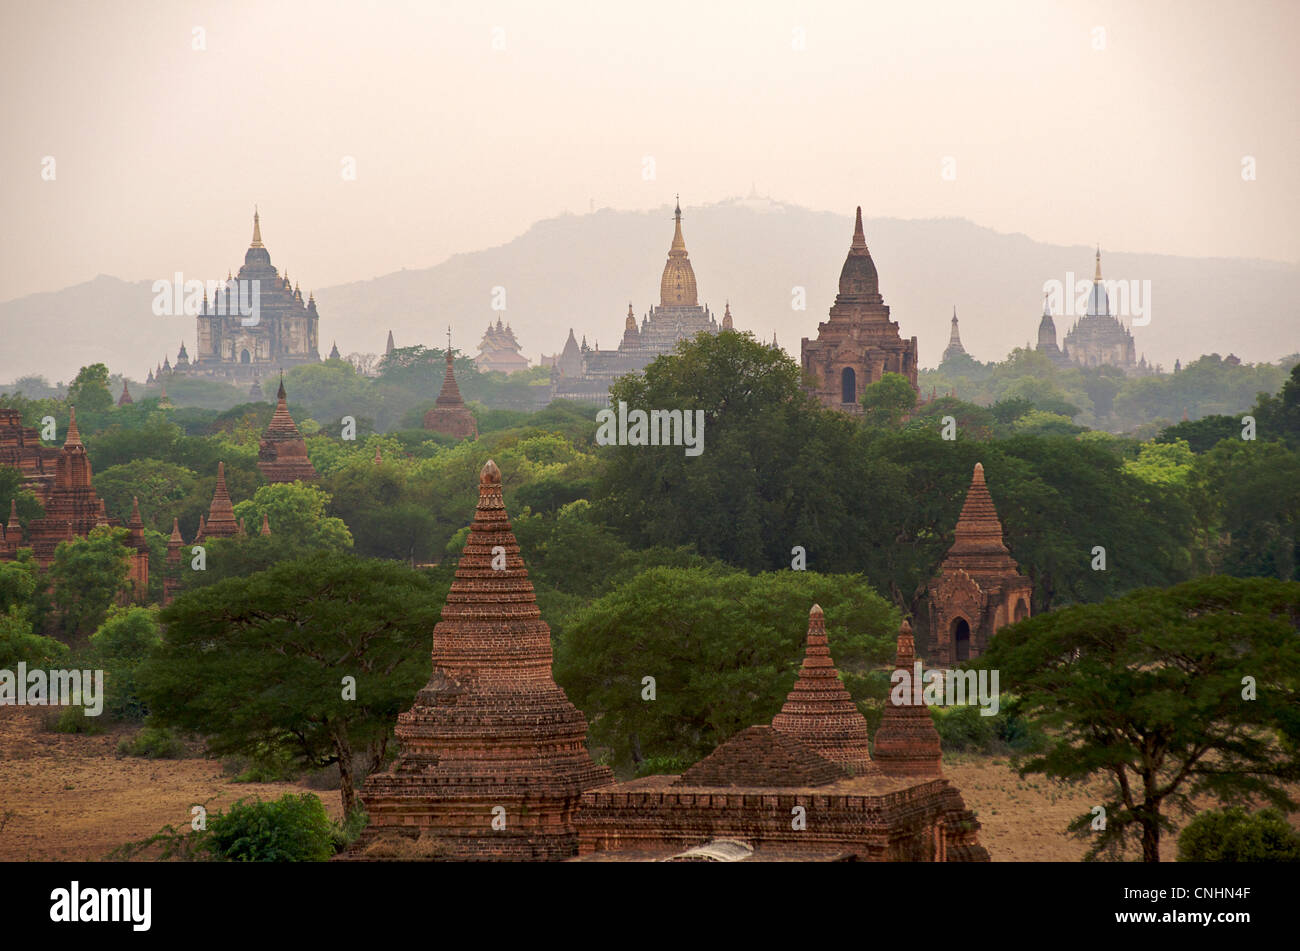 View across the plain of Bagan with the golden spire of Ananda pagoda centre.  Burma.  Ancient stupas - Stock Image